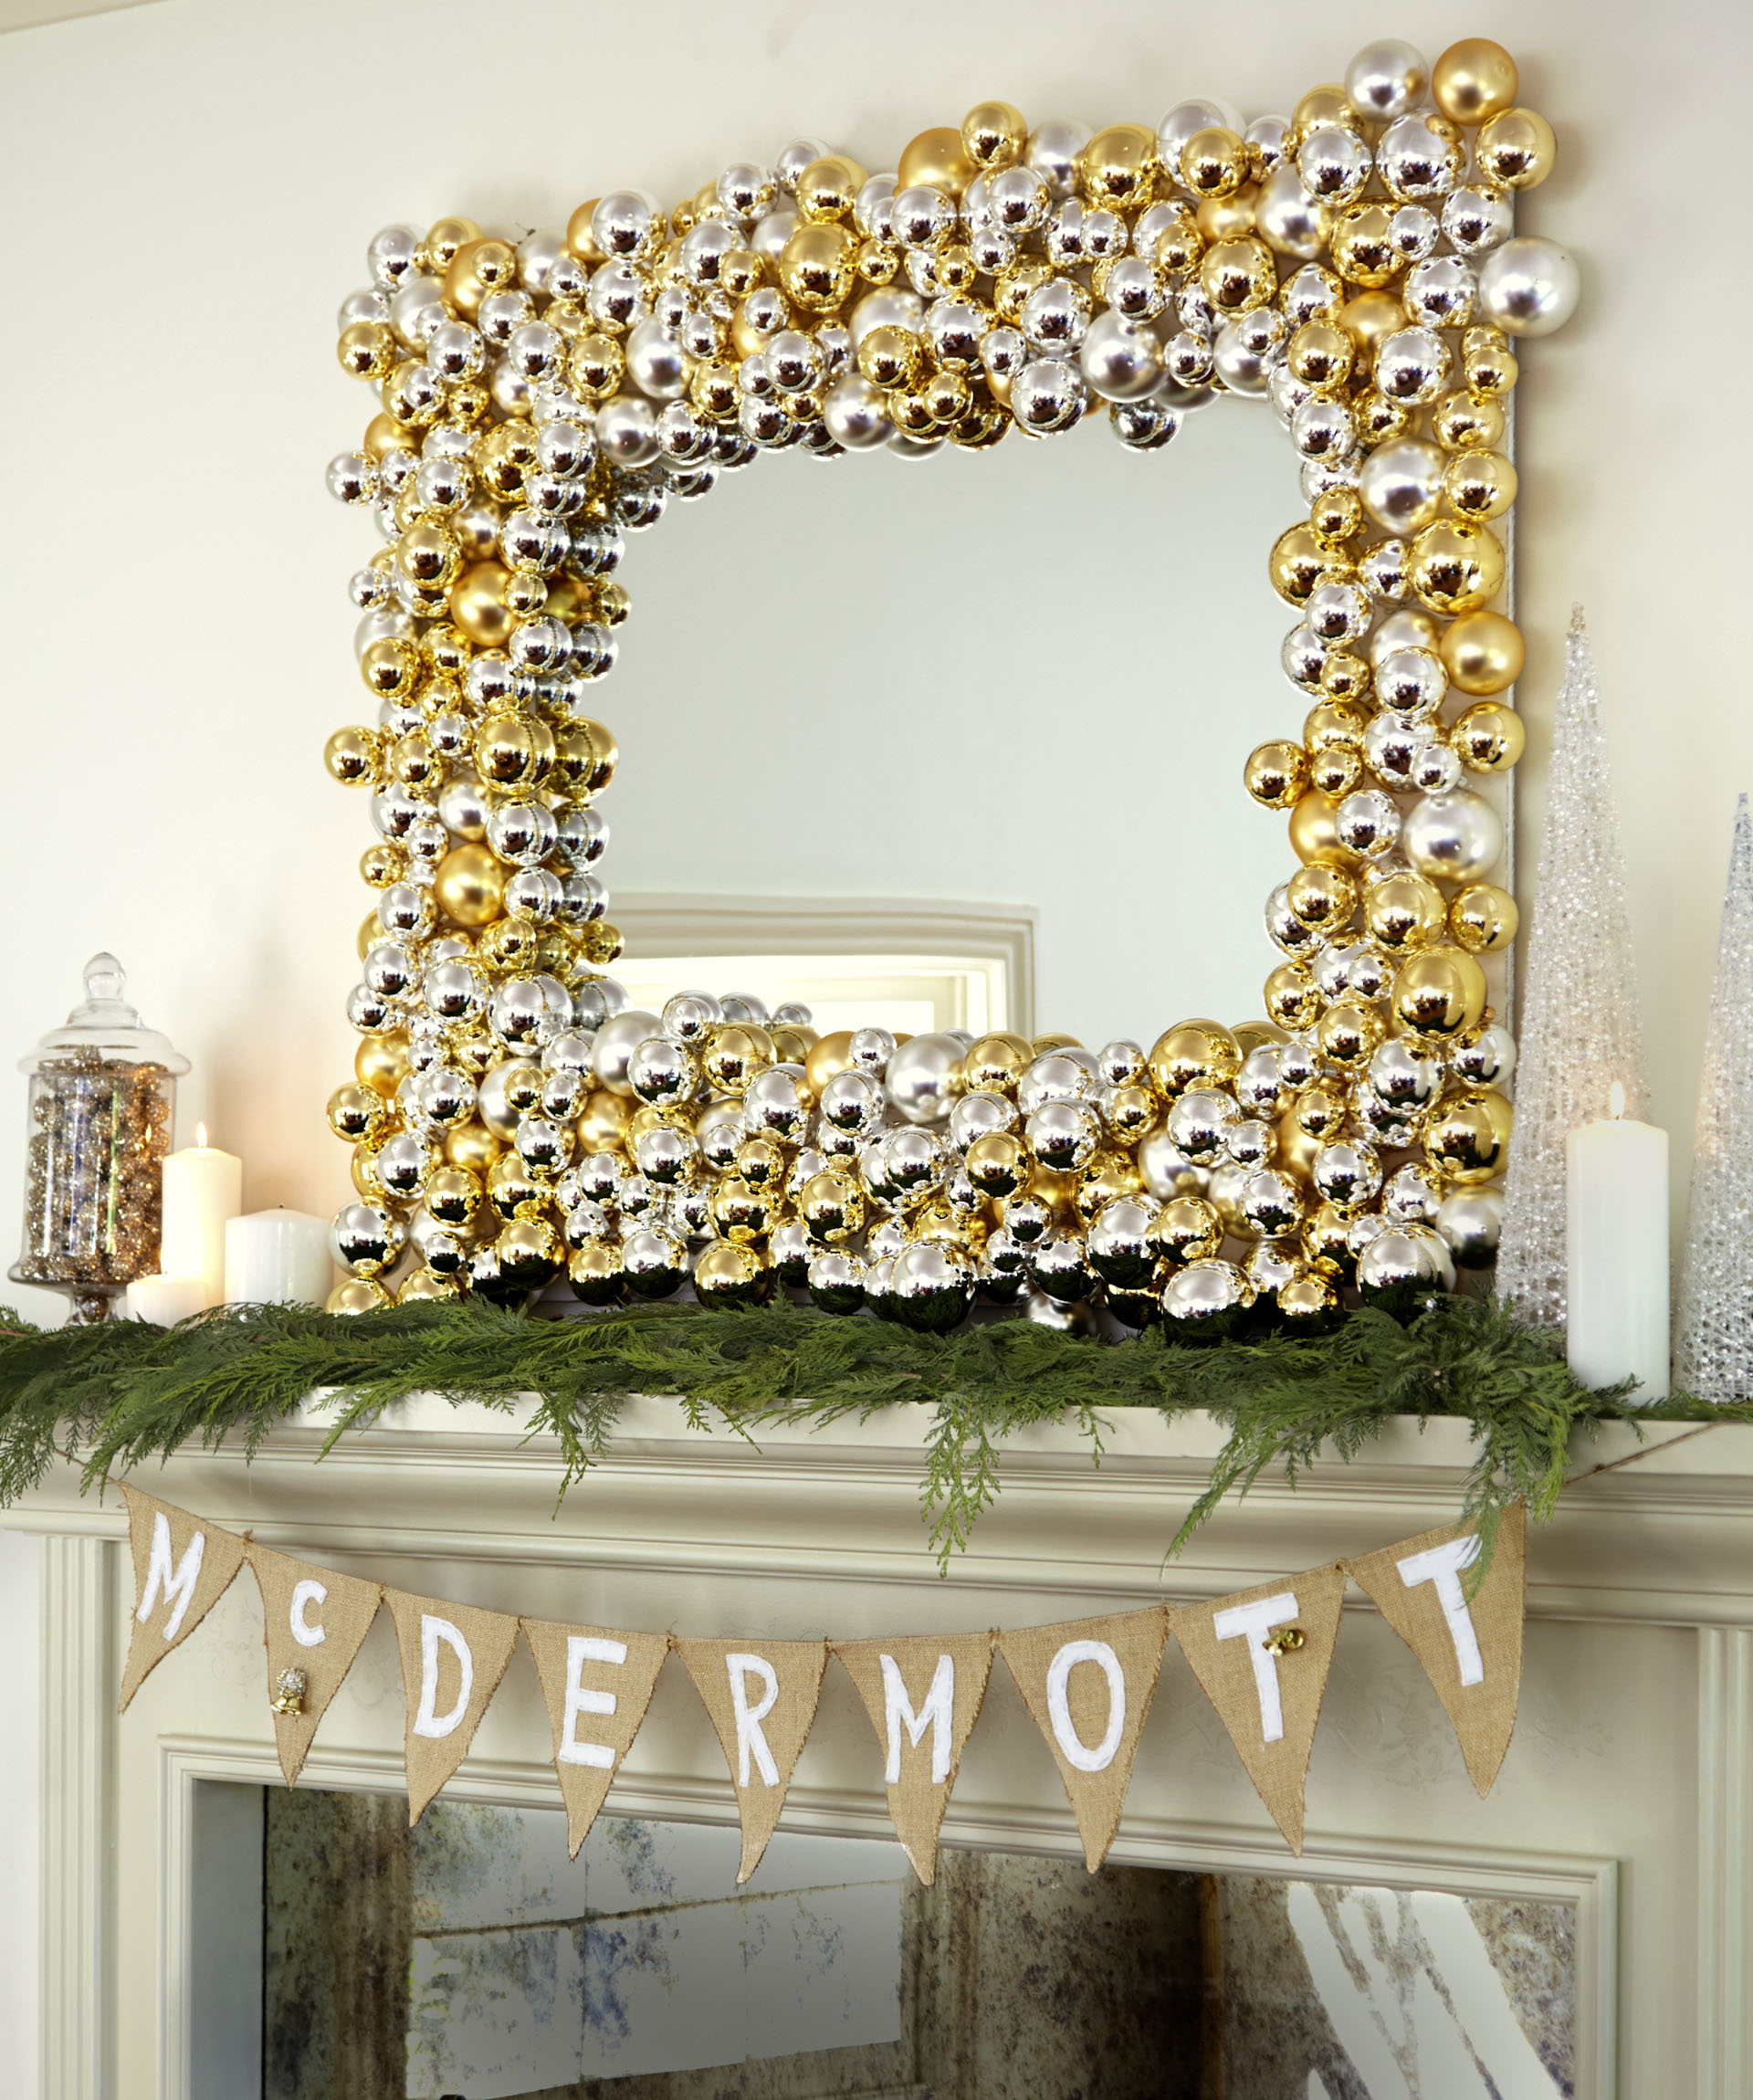 Decoration Design: DIY Holiday Decor Ideas From Tori Spelling